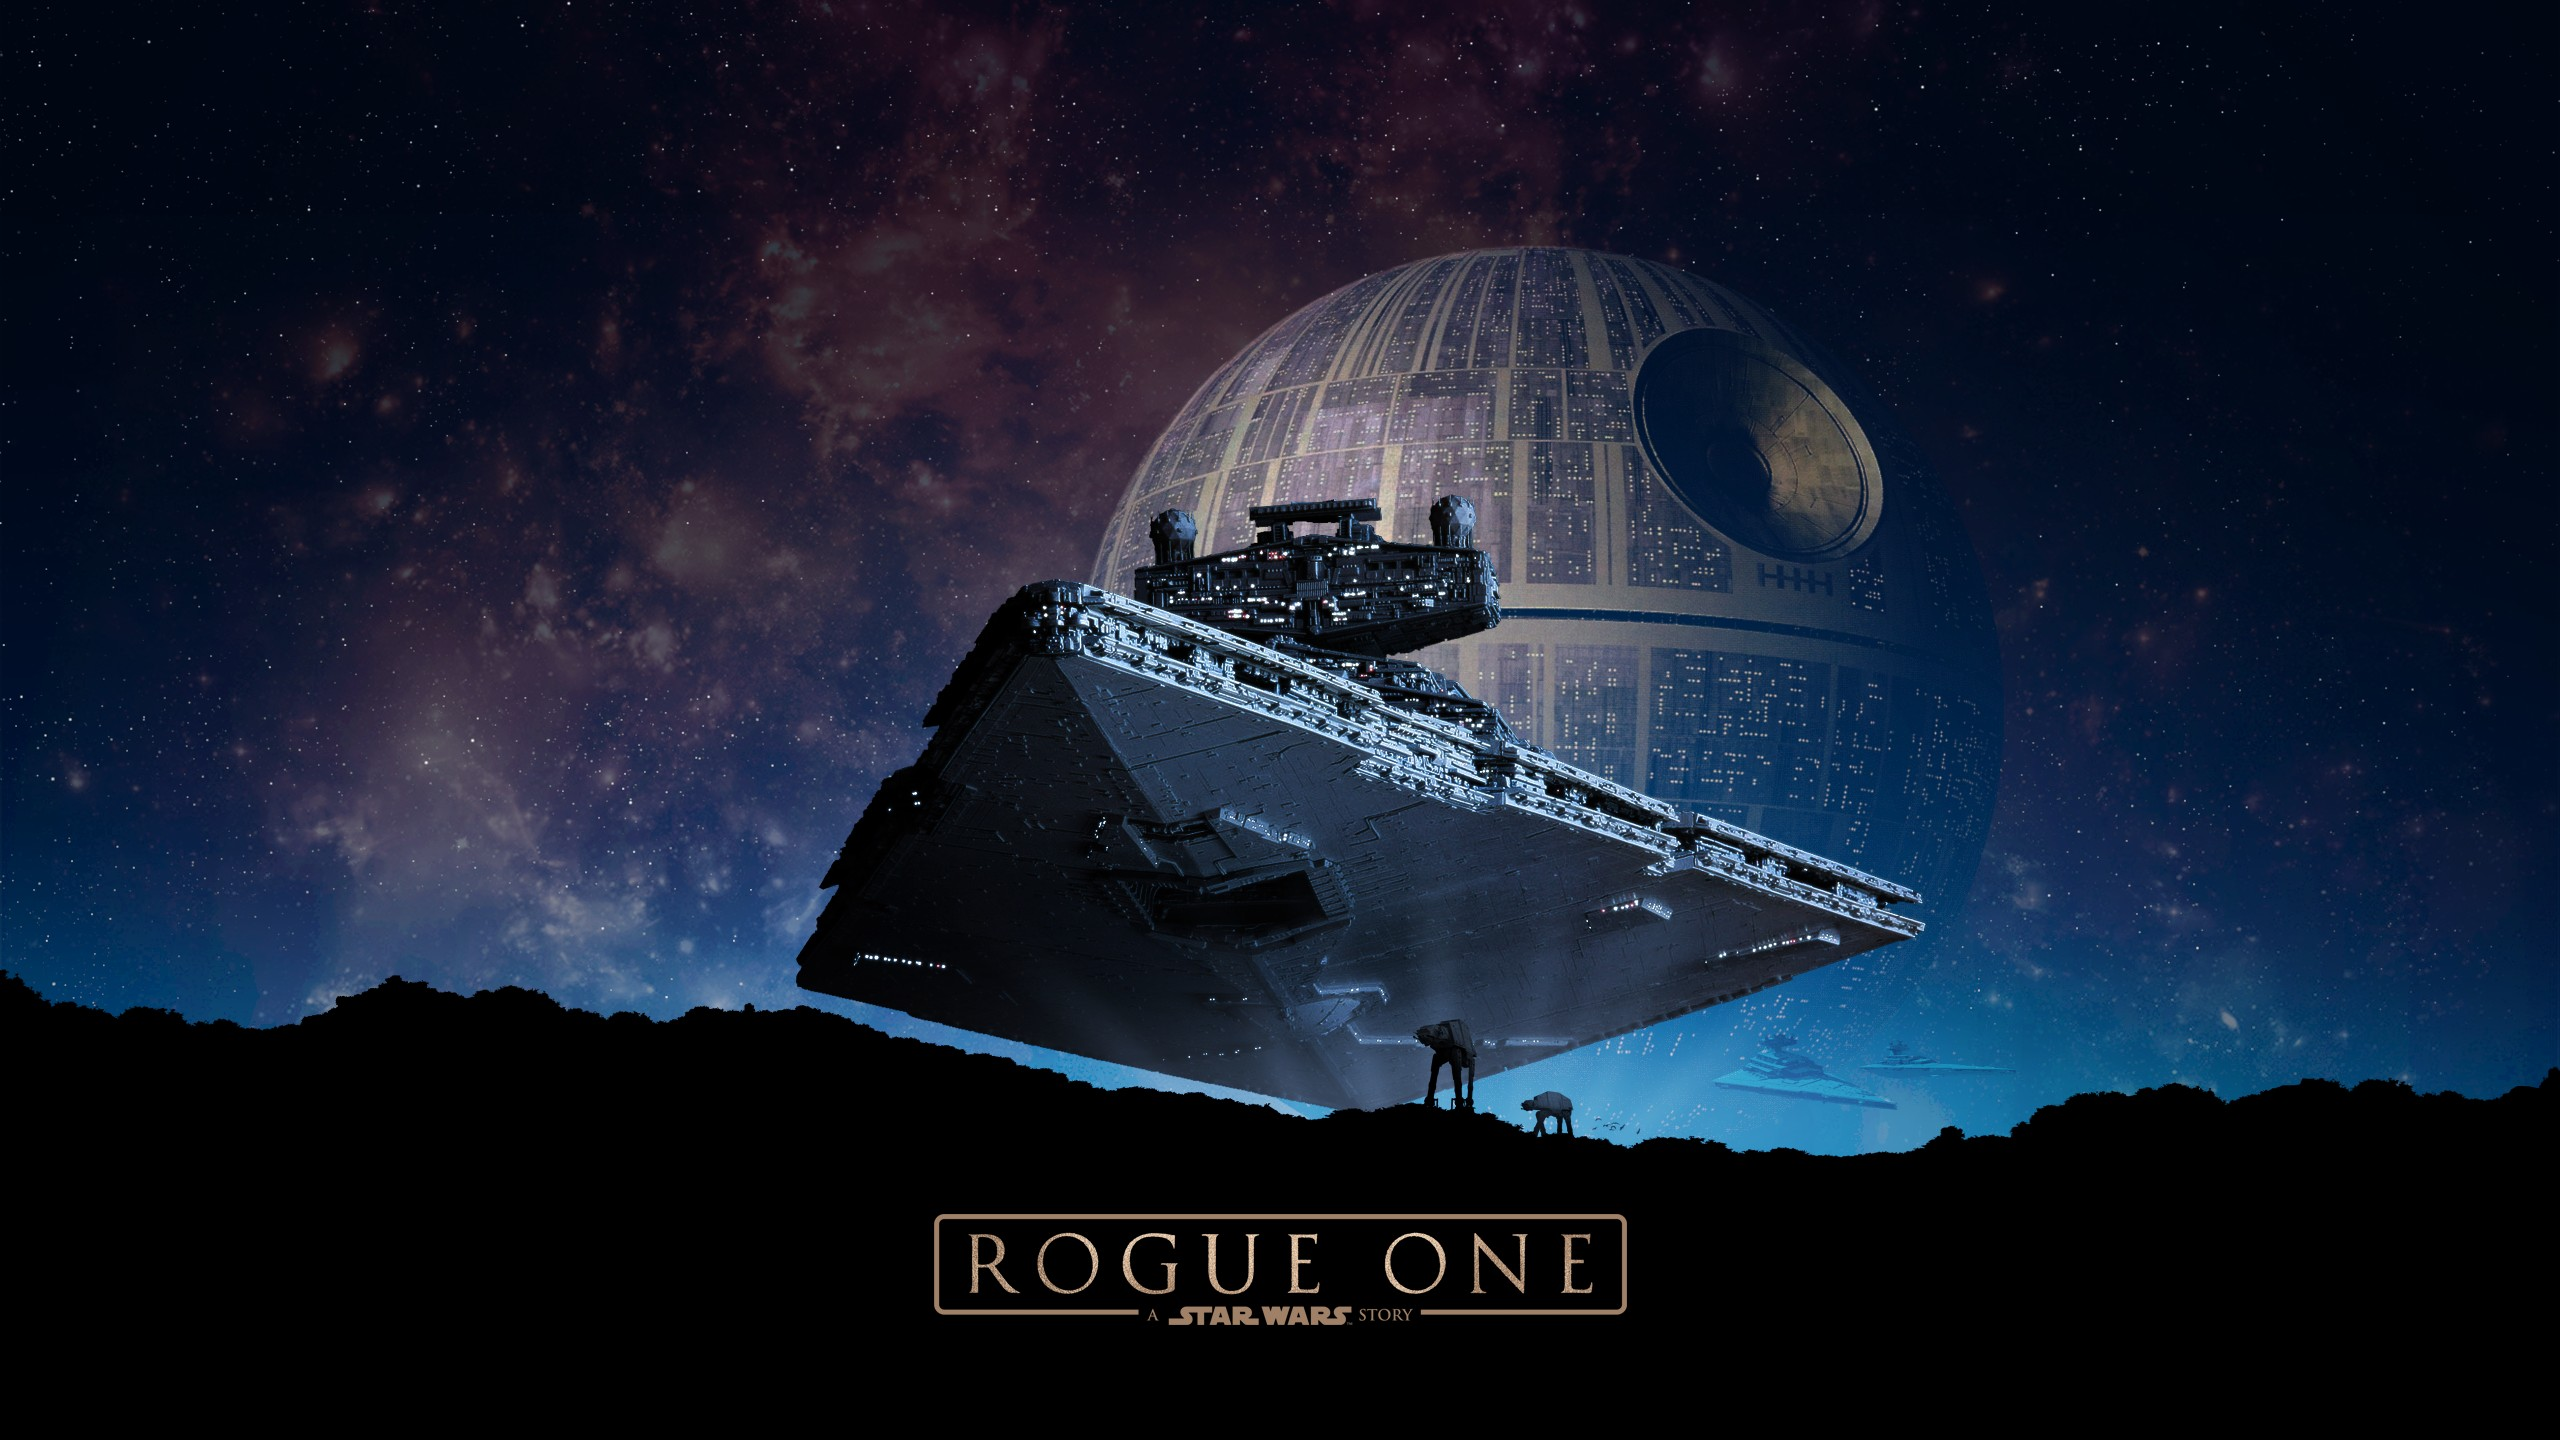 Star Wars Rogue One Wallpaper Download Free High Resolution